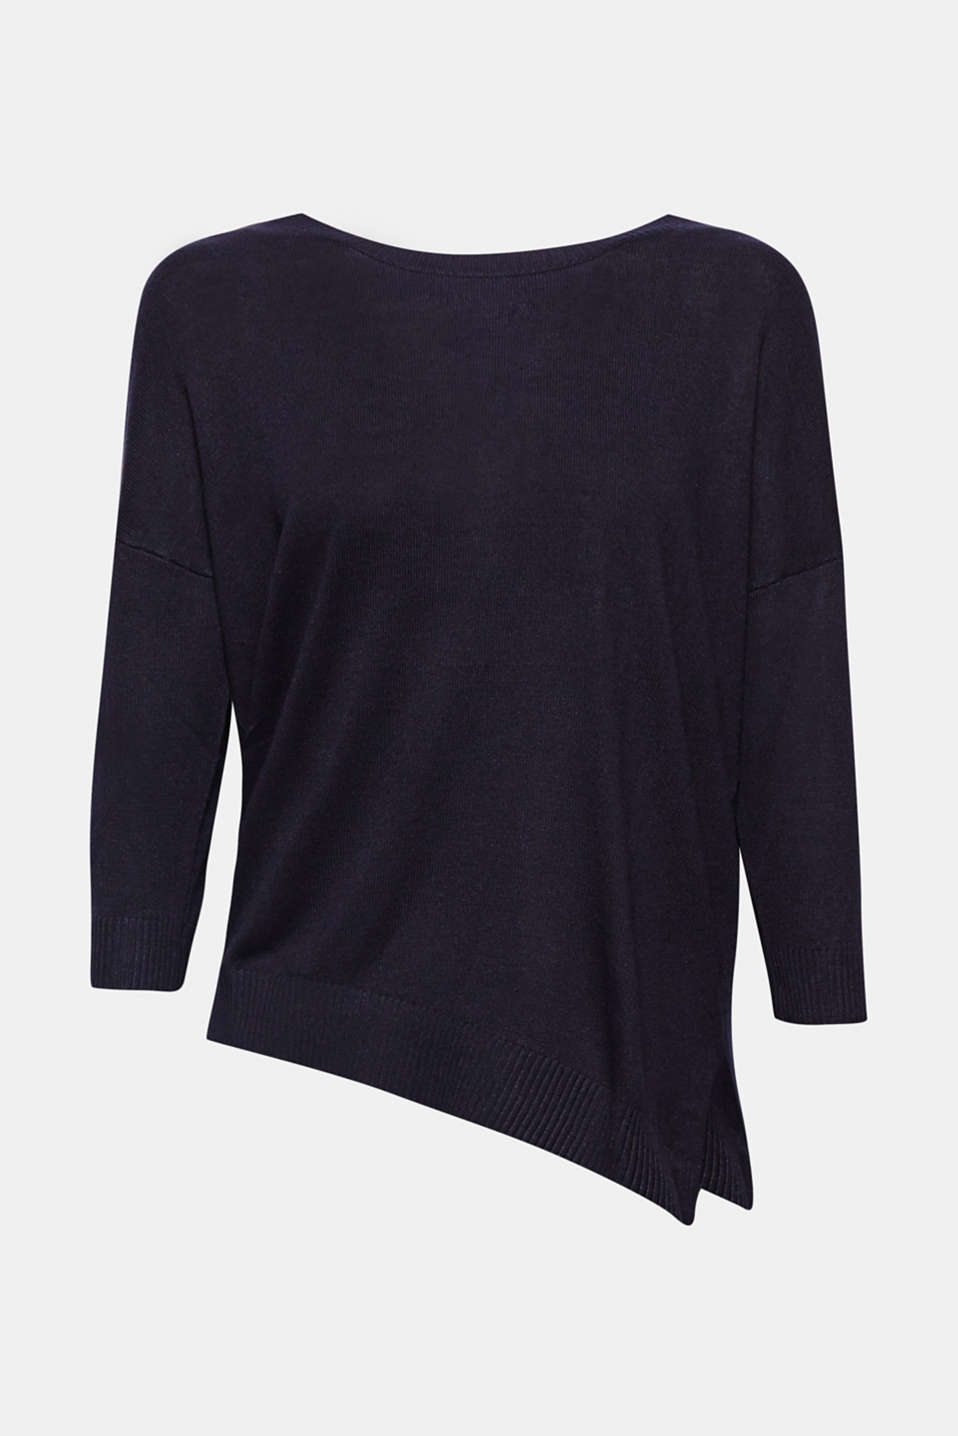 Slightly shimmering and super soft: this fine knit jumper wows with a shiny finish and decorative raglan sleeves!